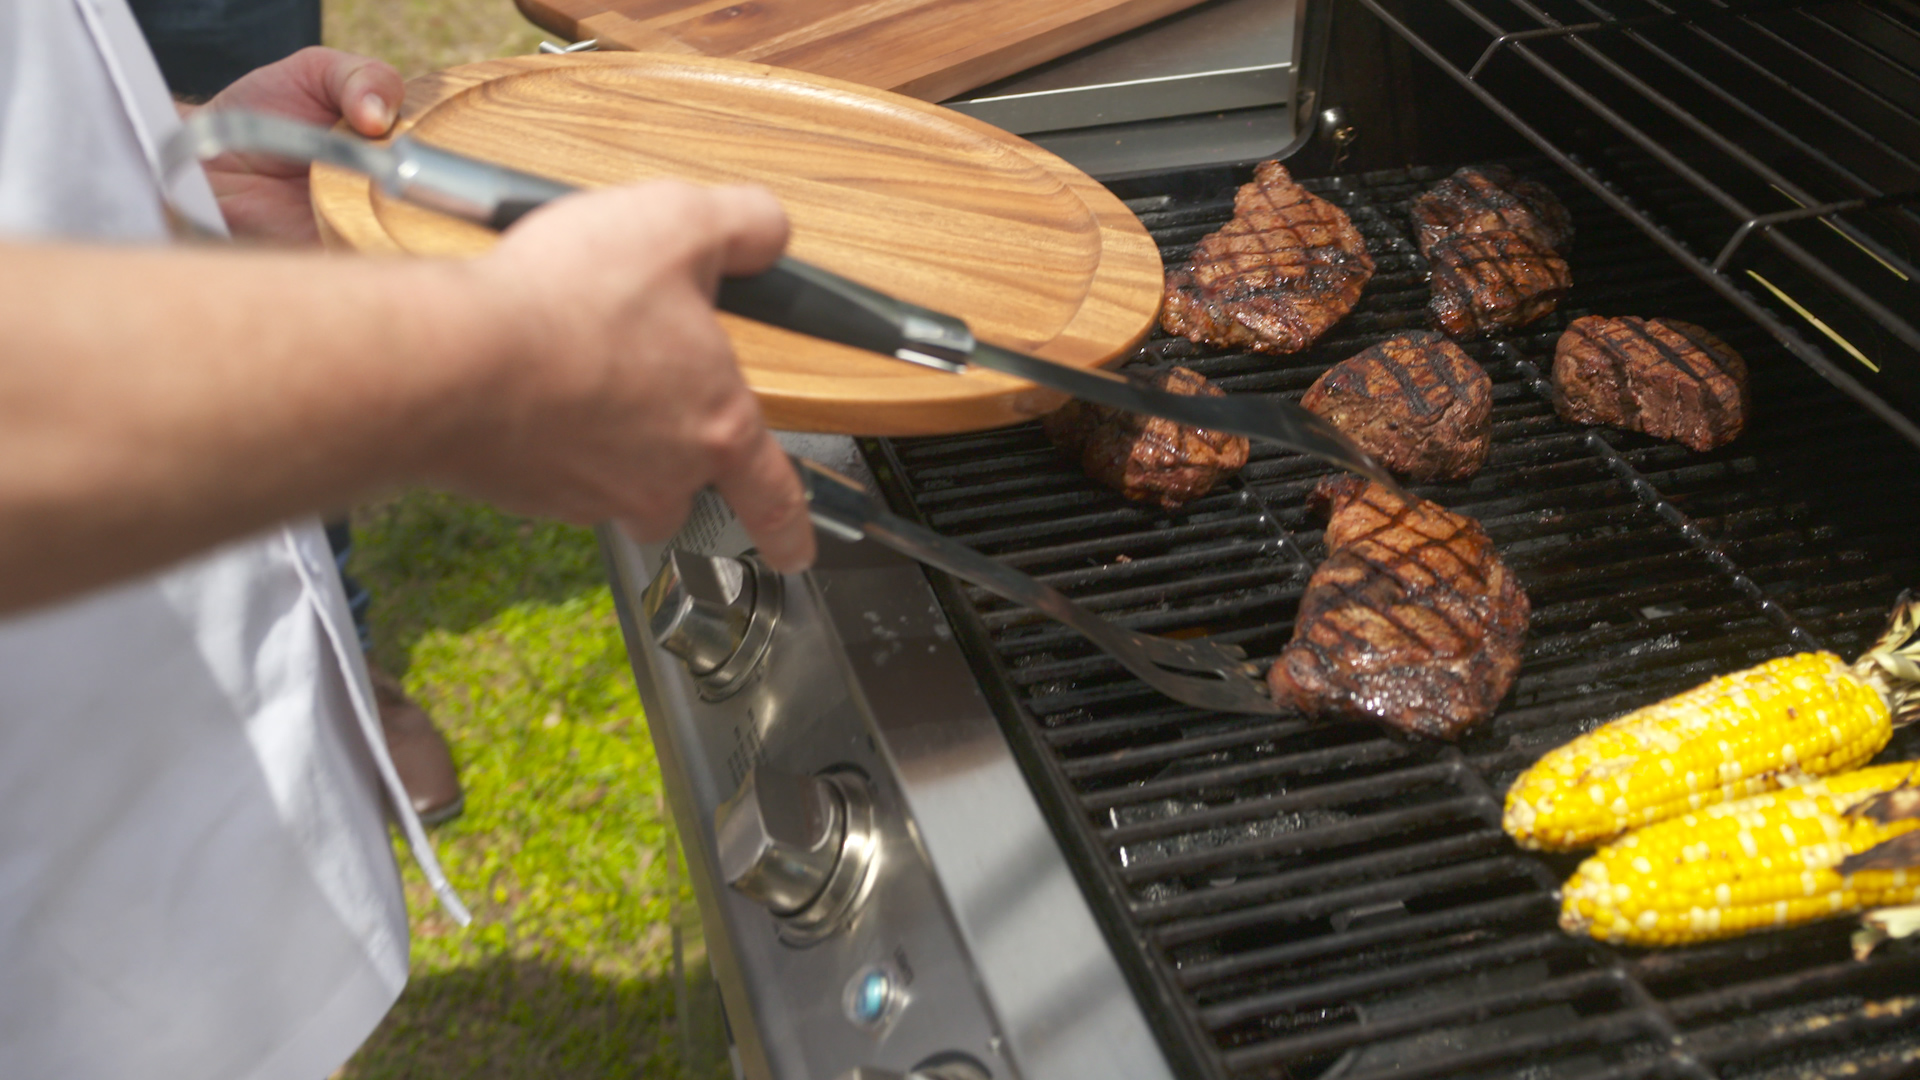 Submitted LongHorn Steakhouse_Grilling on Memorial Day.jpg